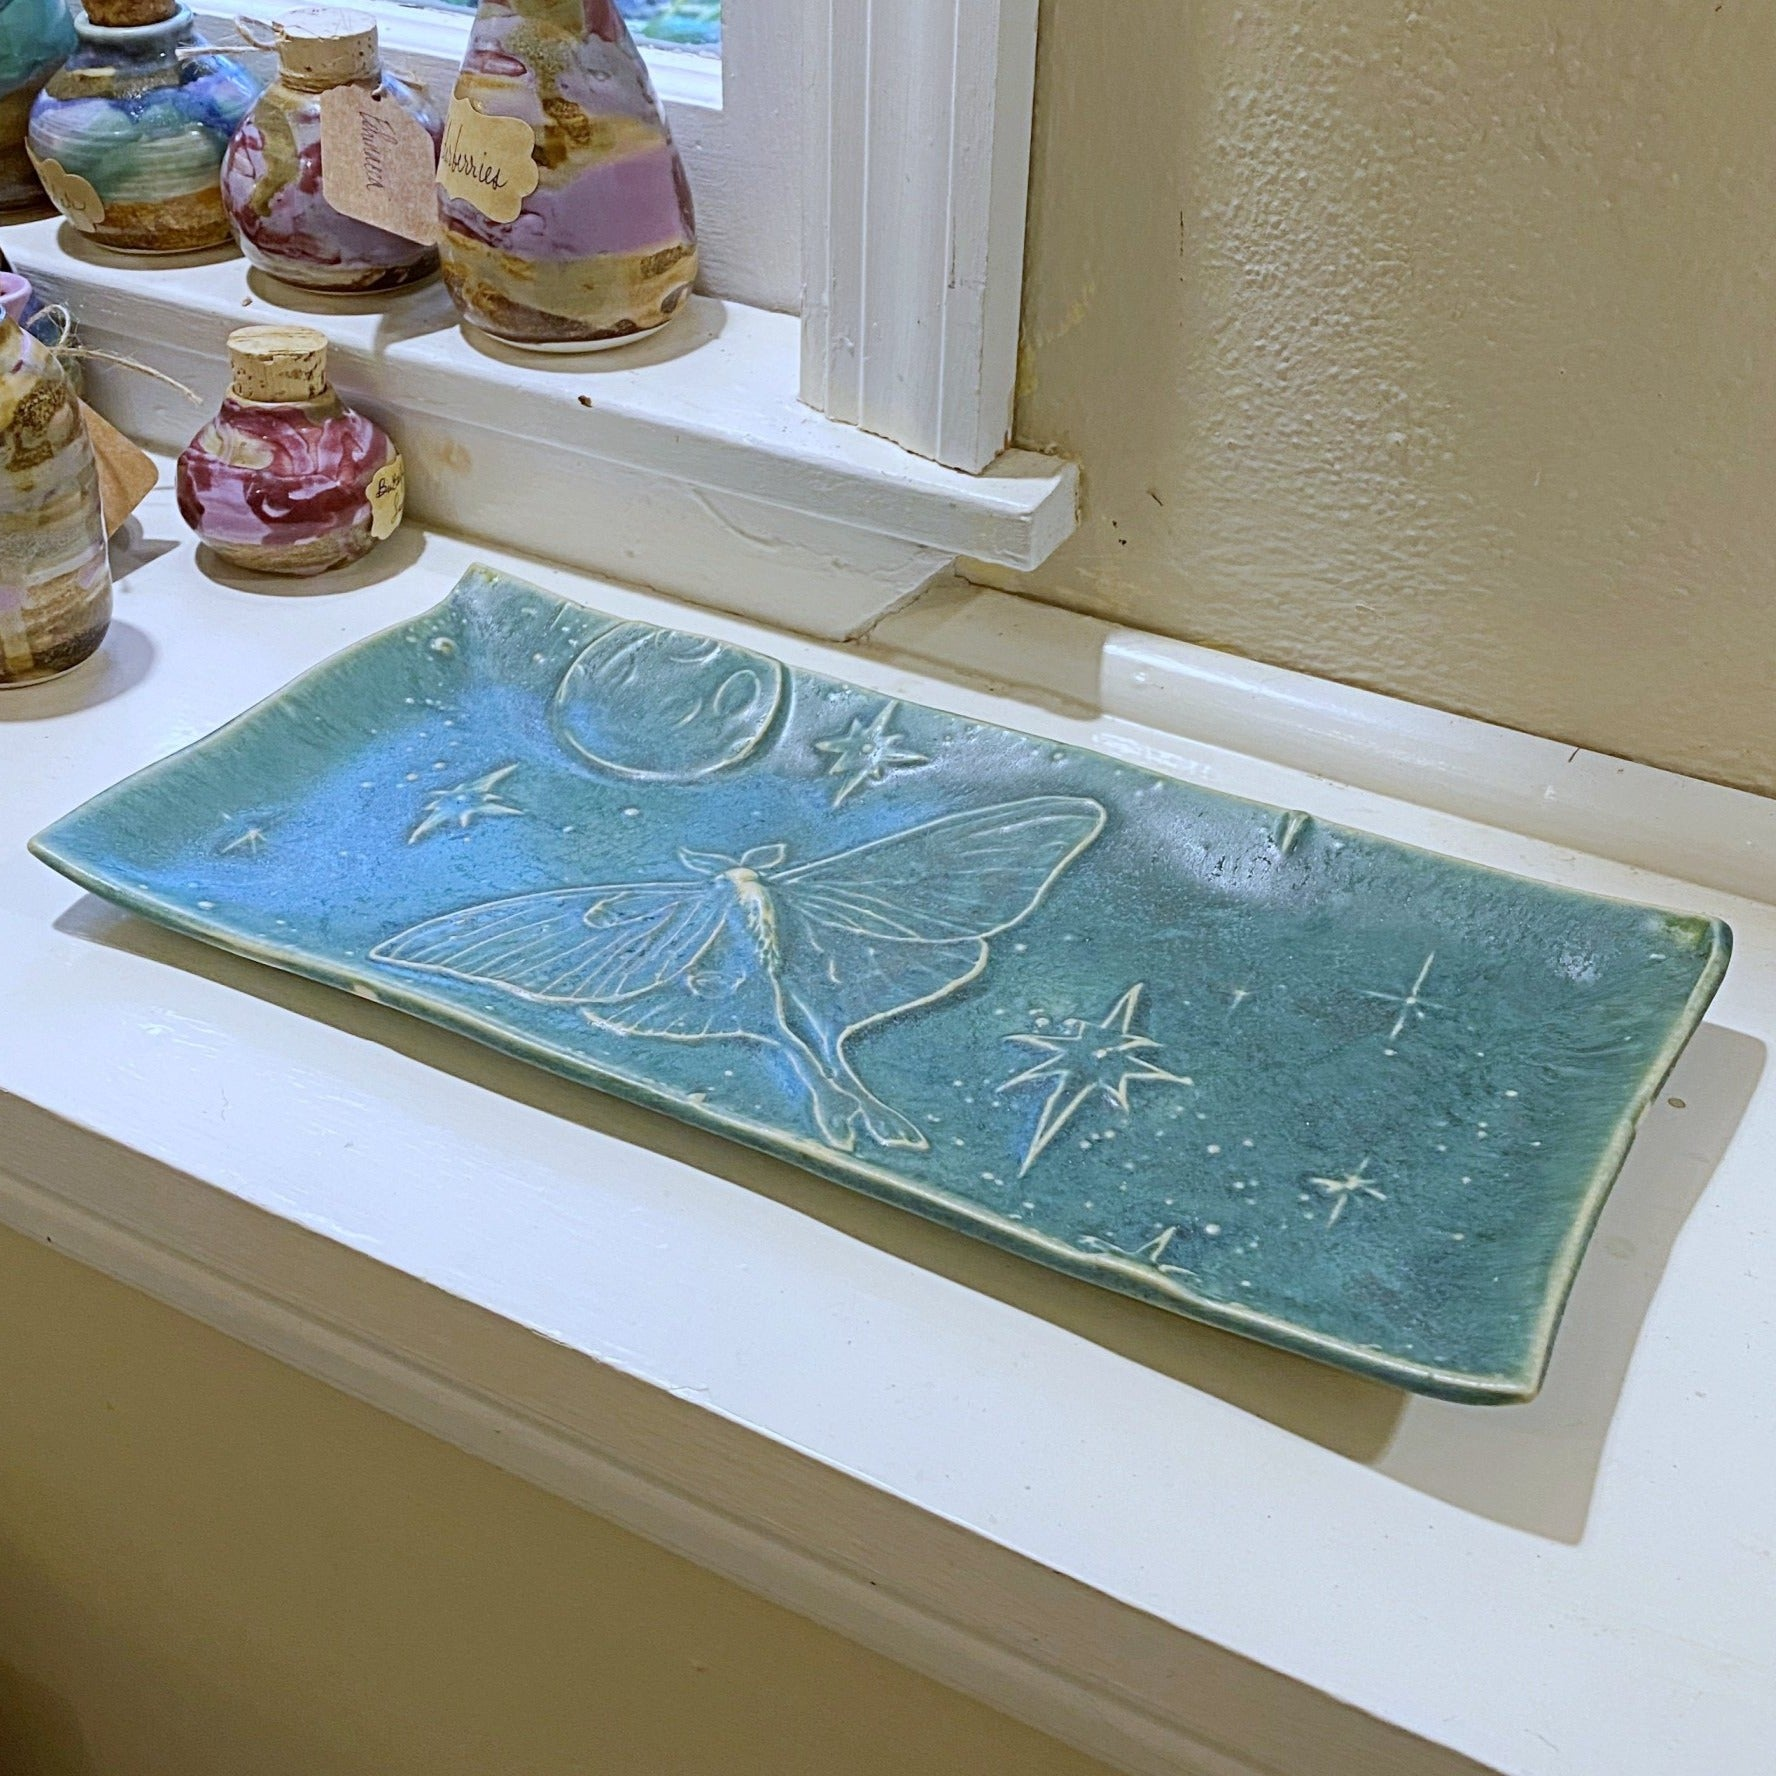 Luna Moth Porcelain Tray - Speckled Moss